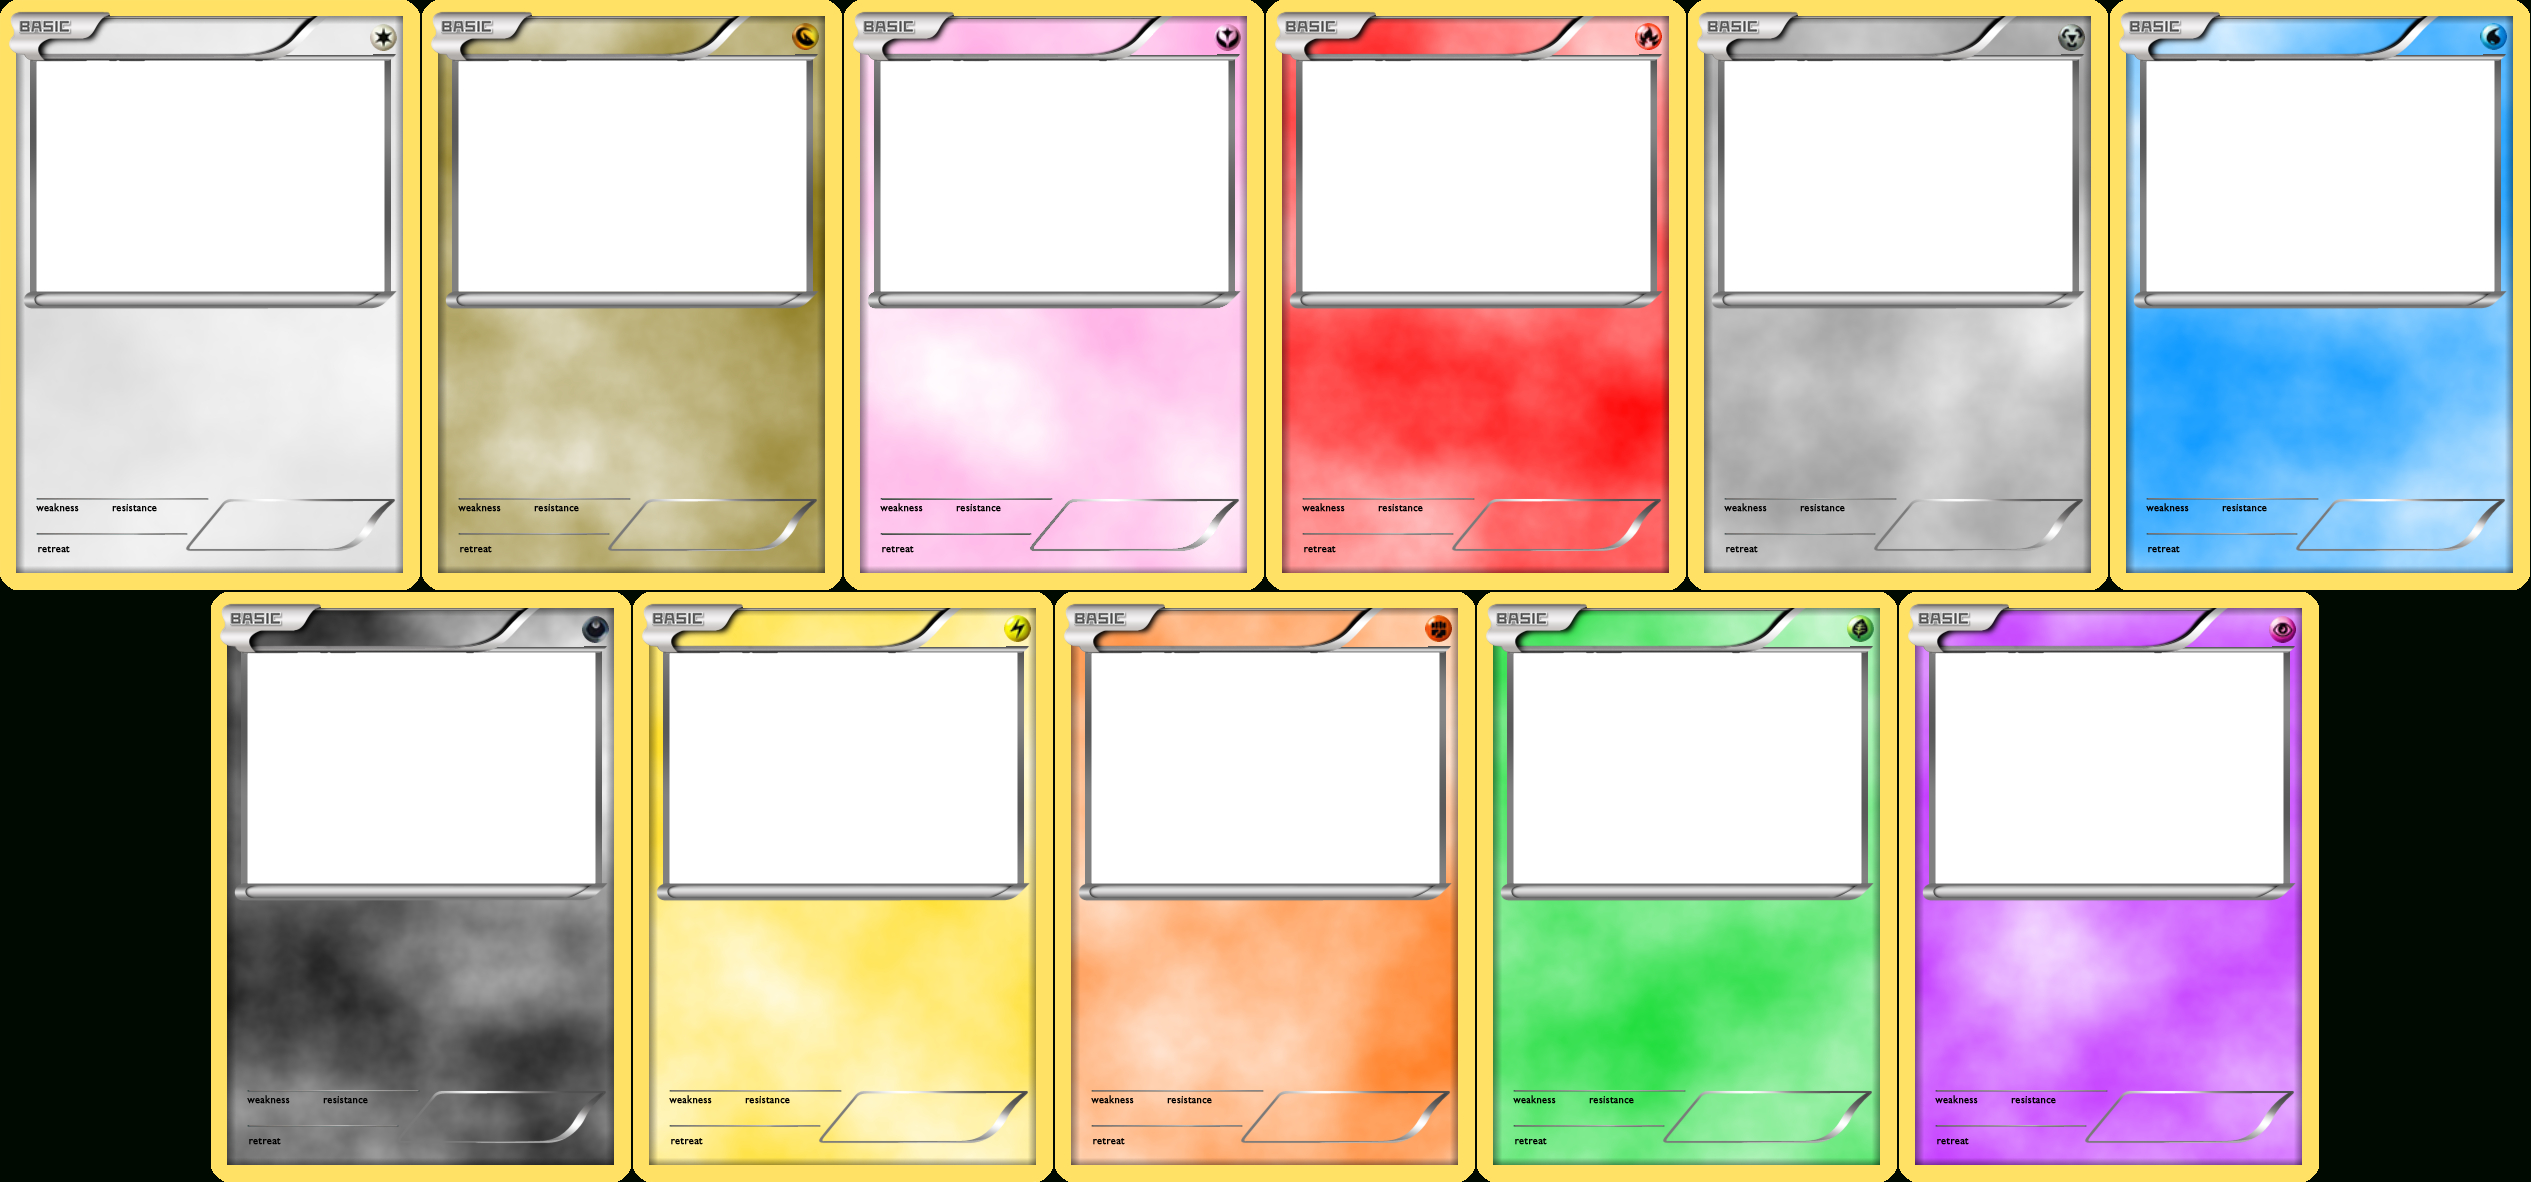 Pokemon Blank Card Templateslevelinfinitum.deviantart intended for Trading Cards Templates Free Download